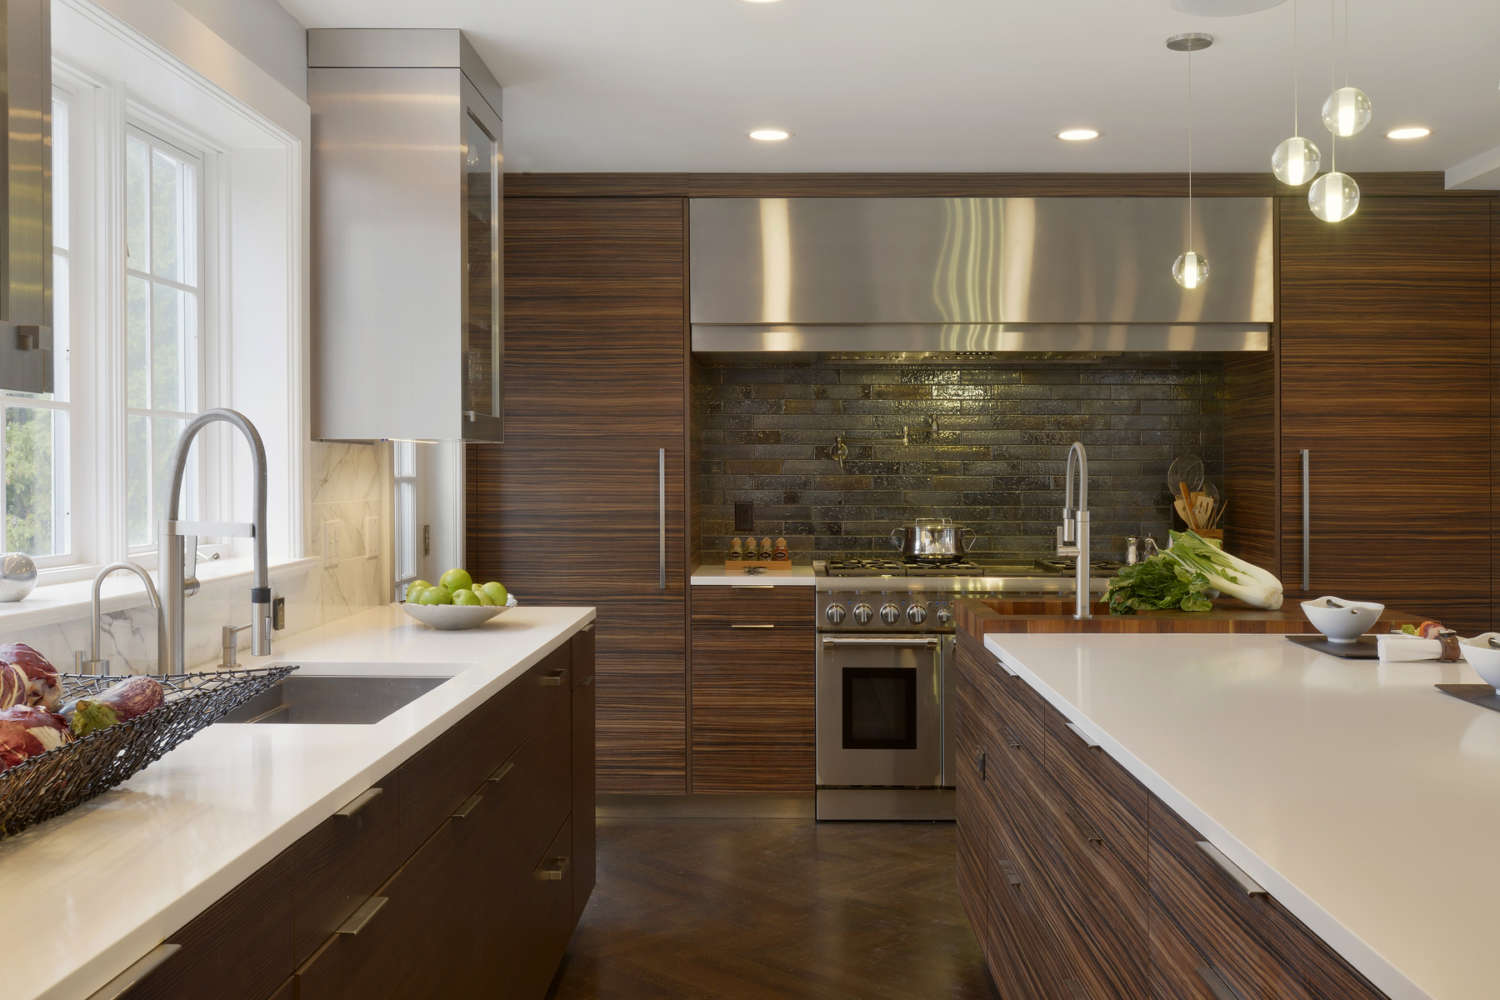 The large hearth with textural backsplash is a focal point of this contemporary kitchen. Fully custom cabinetry is flat panel, frameless Eva door style by Artcraft in a mix of Molveno Pine Laminate with horizontal grain and Cinque Terre laminate with horizontal grain. The kitchen also features alumasteel and glass accents. Design by Paula Greer, CKD, of Bilotta Kitchens.